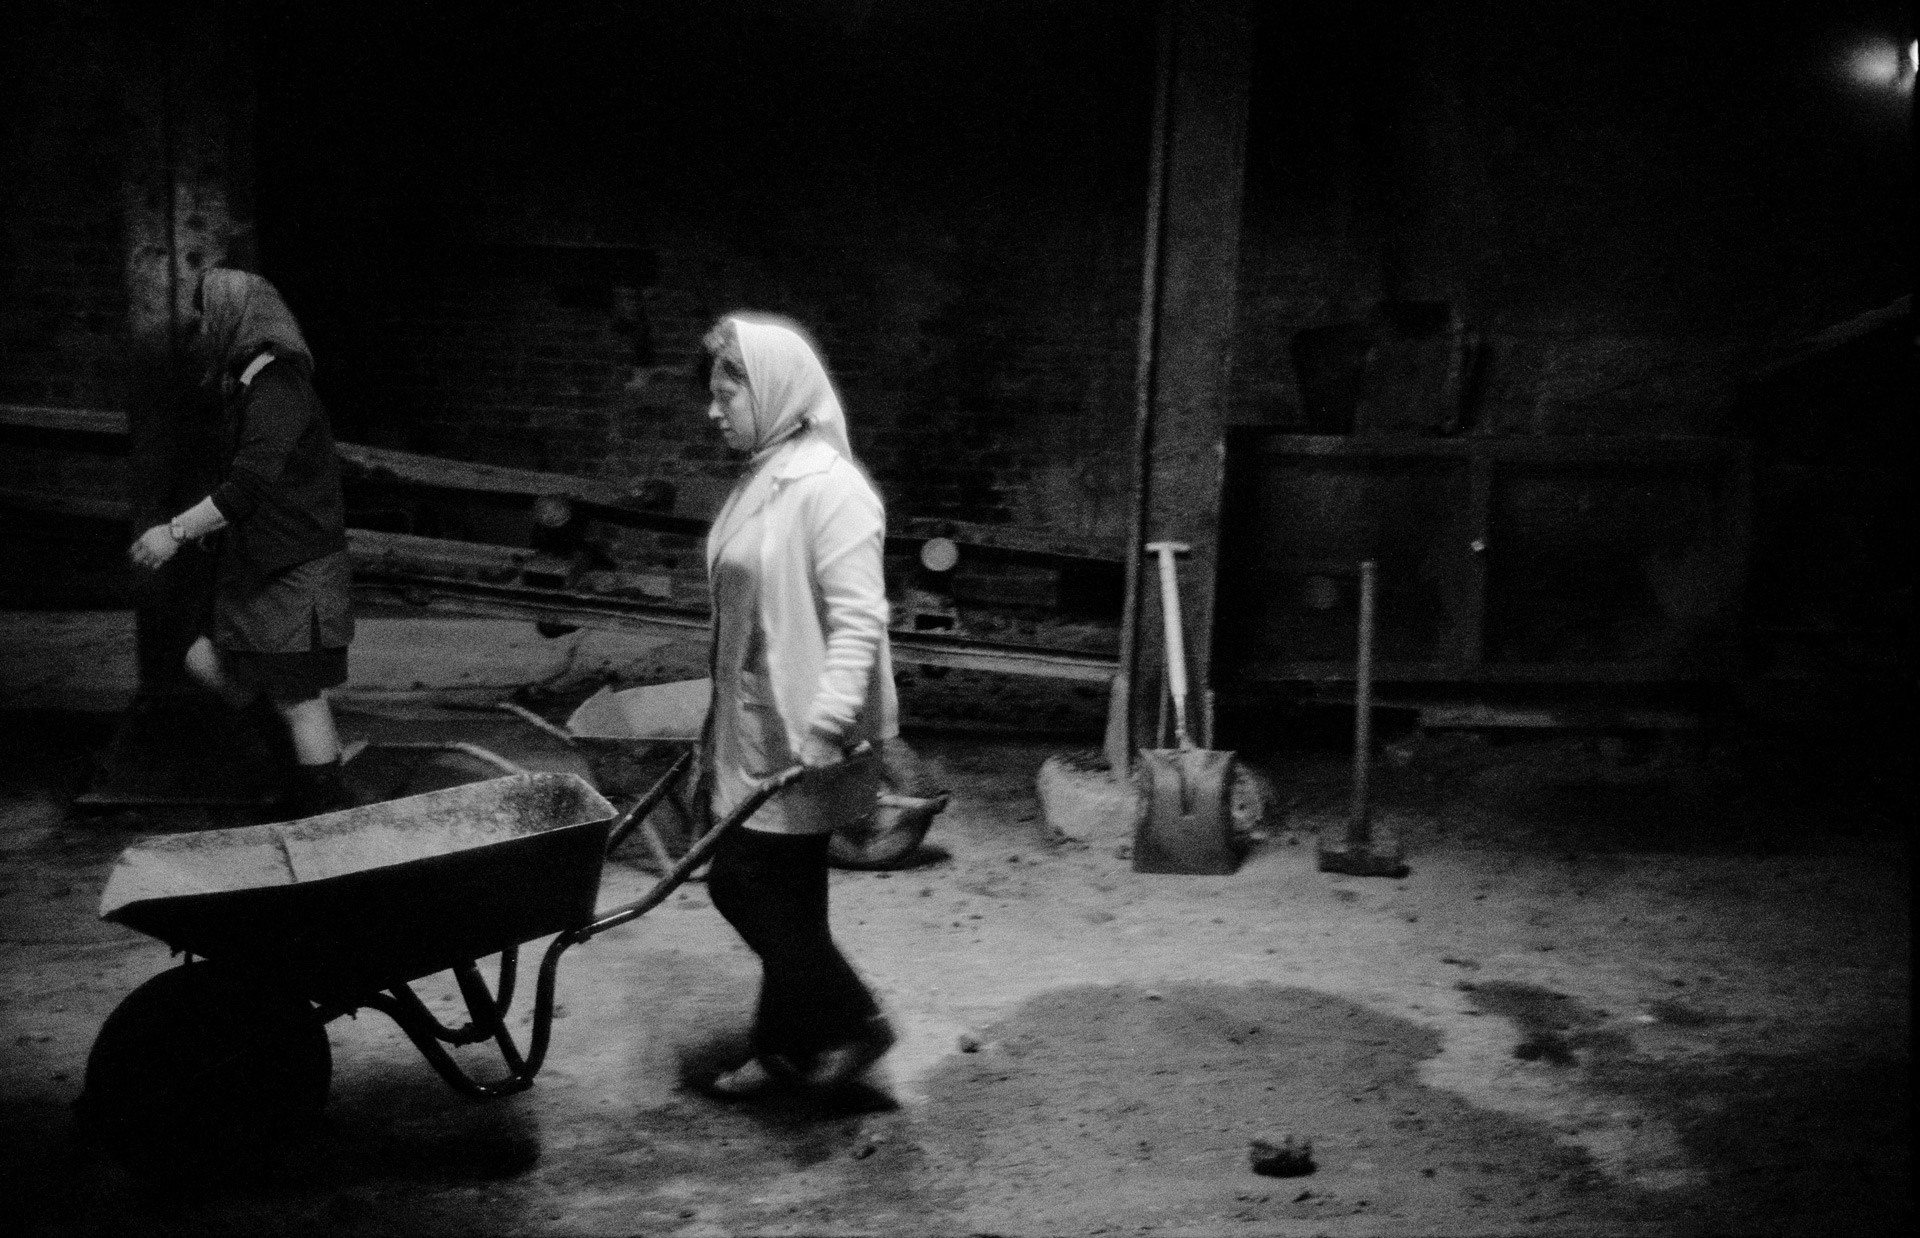 Ella Napier, Labourer,  Auchinlea Brick Company, Cleland, Lanarkshire from the series 'Clydeside 1974-76', © Larry Herman, image courtesy Street Level Photoworks.